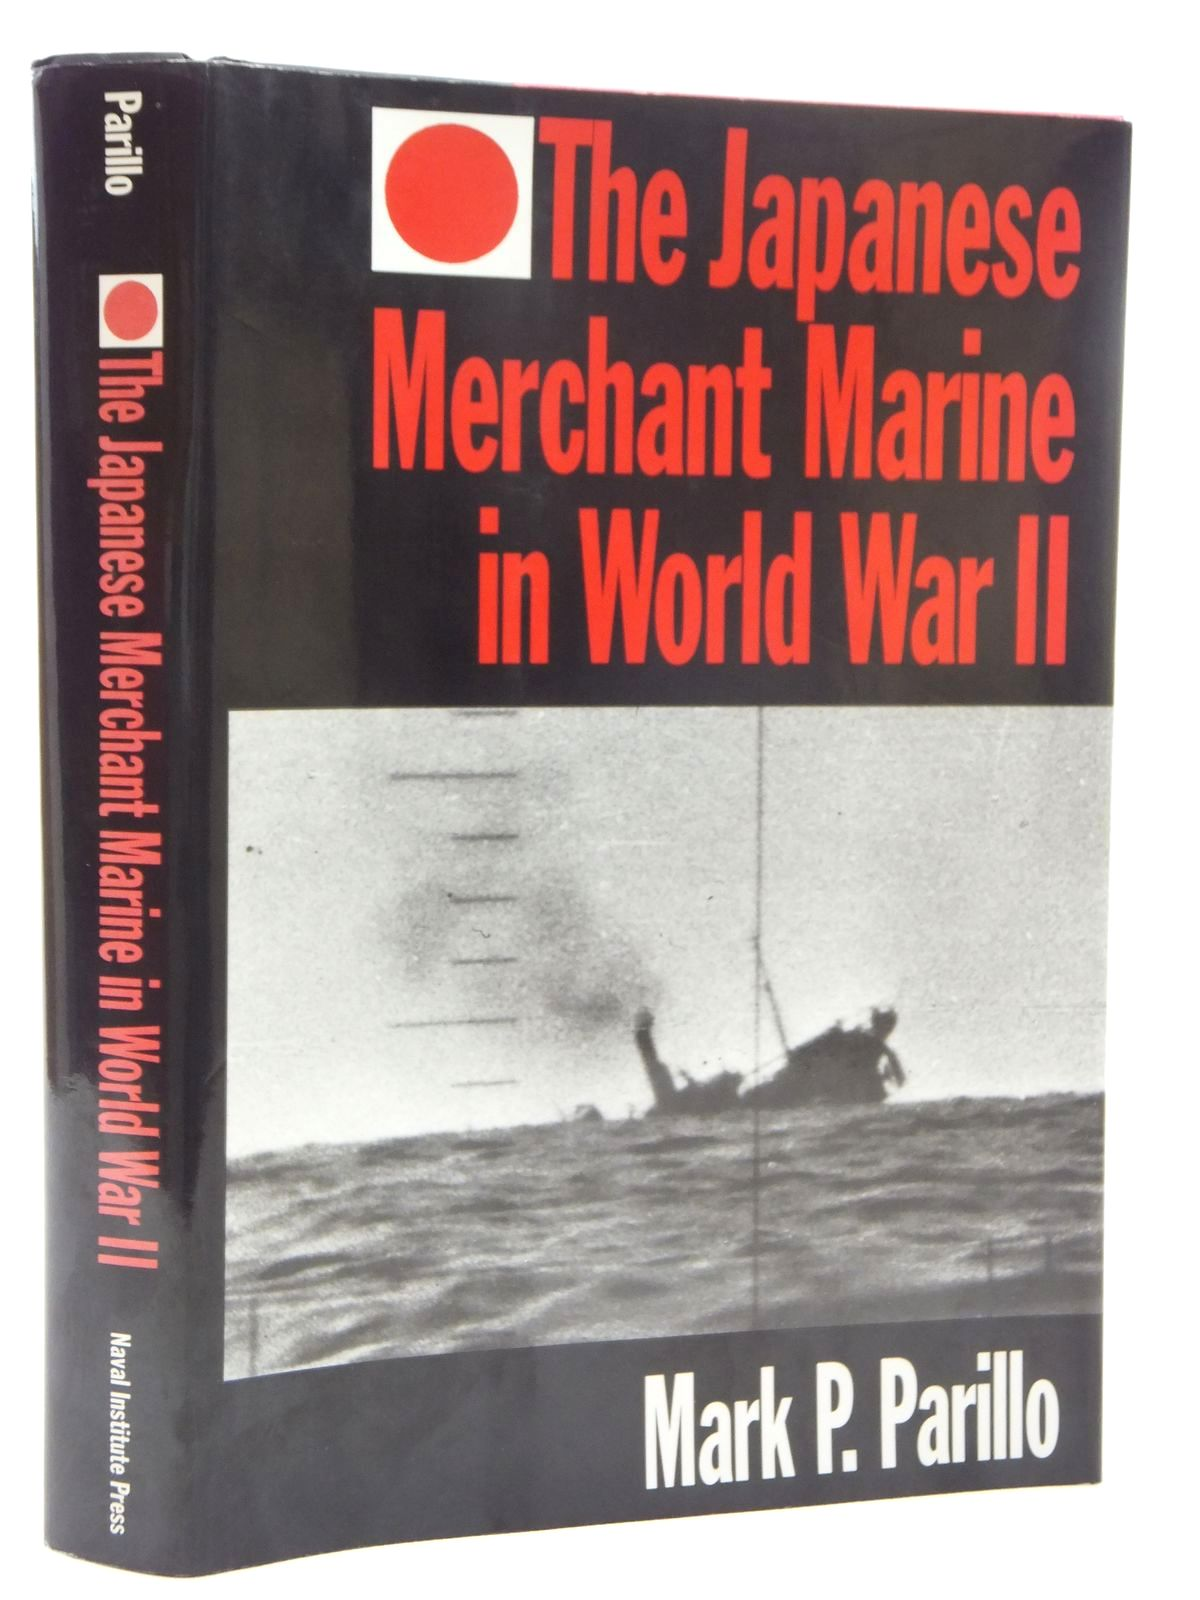 Photo of THE JAPANESE MERCHANT MARINE IN WORLD WAR II written by Parillo, Mark P. published by Airlife (STOCK CODE: 1609566)  for sale by Stella & Rose's Books